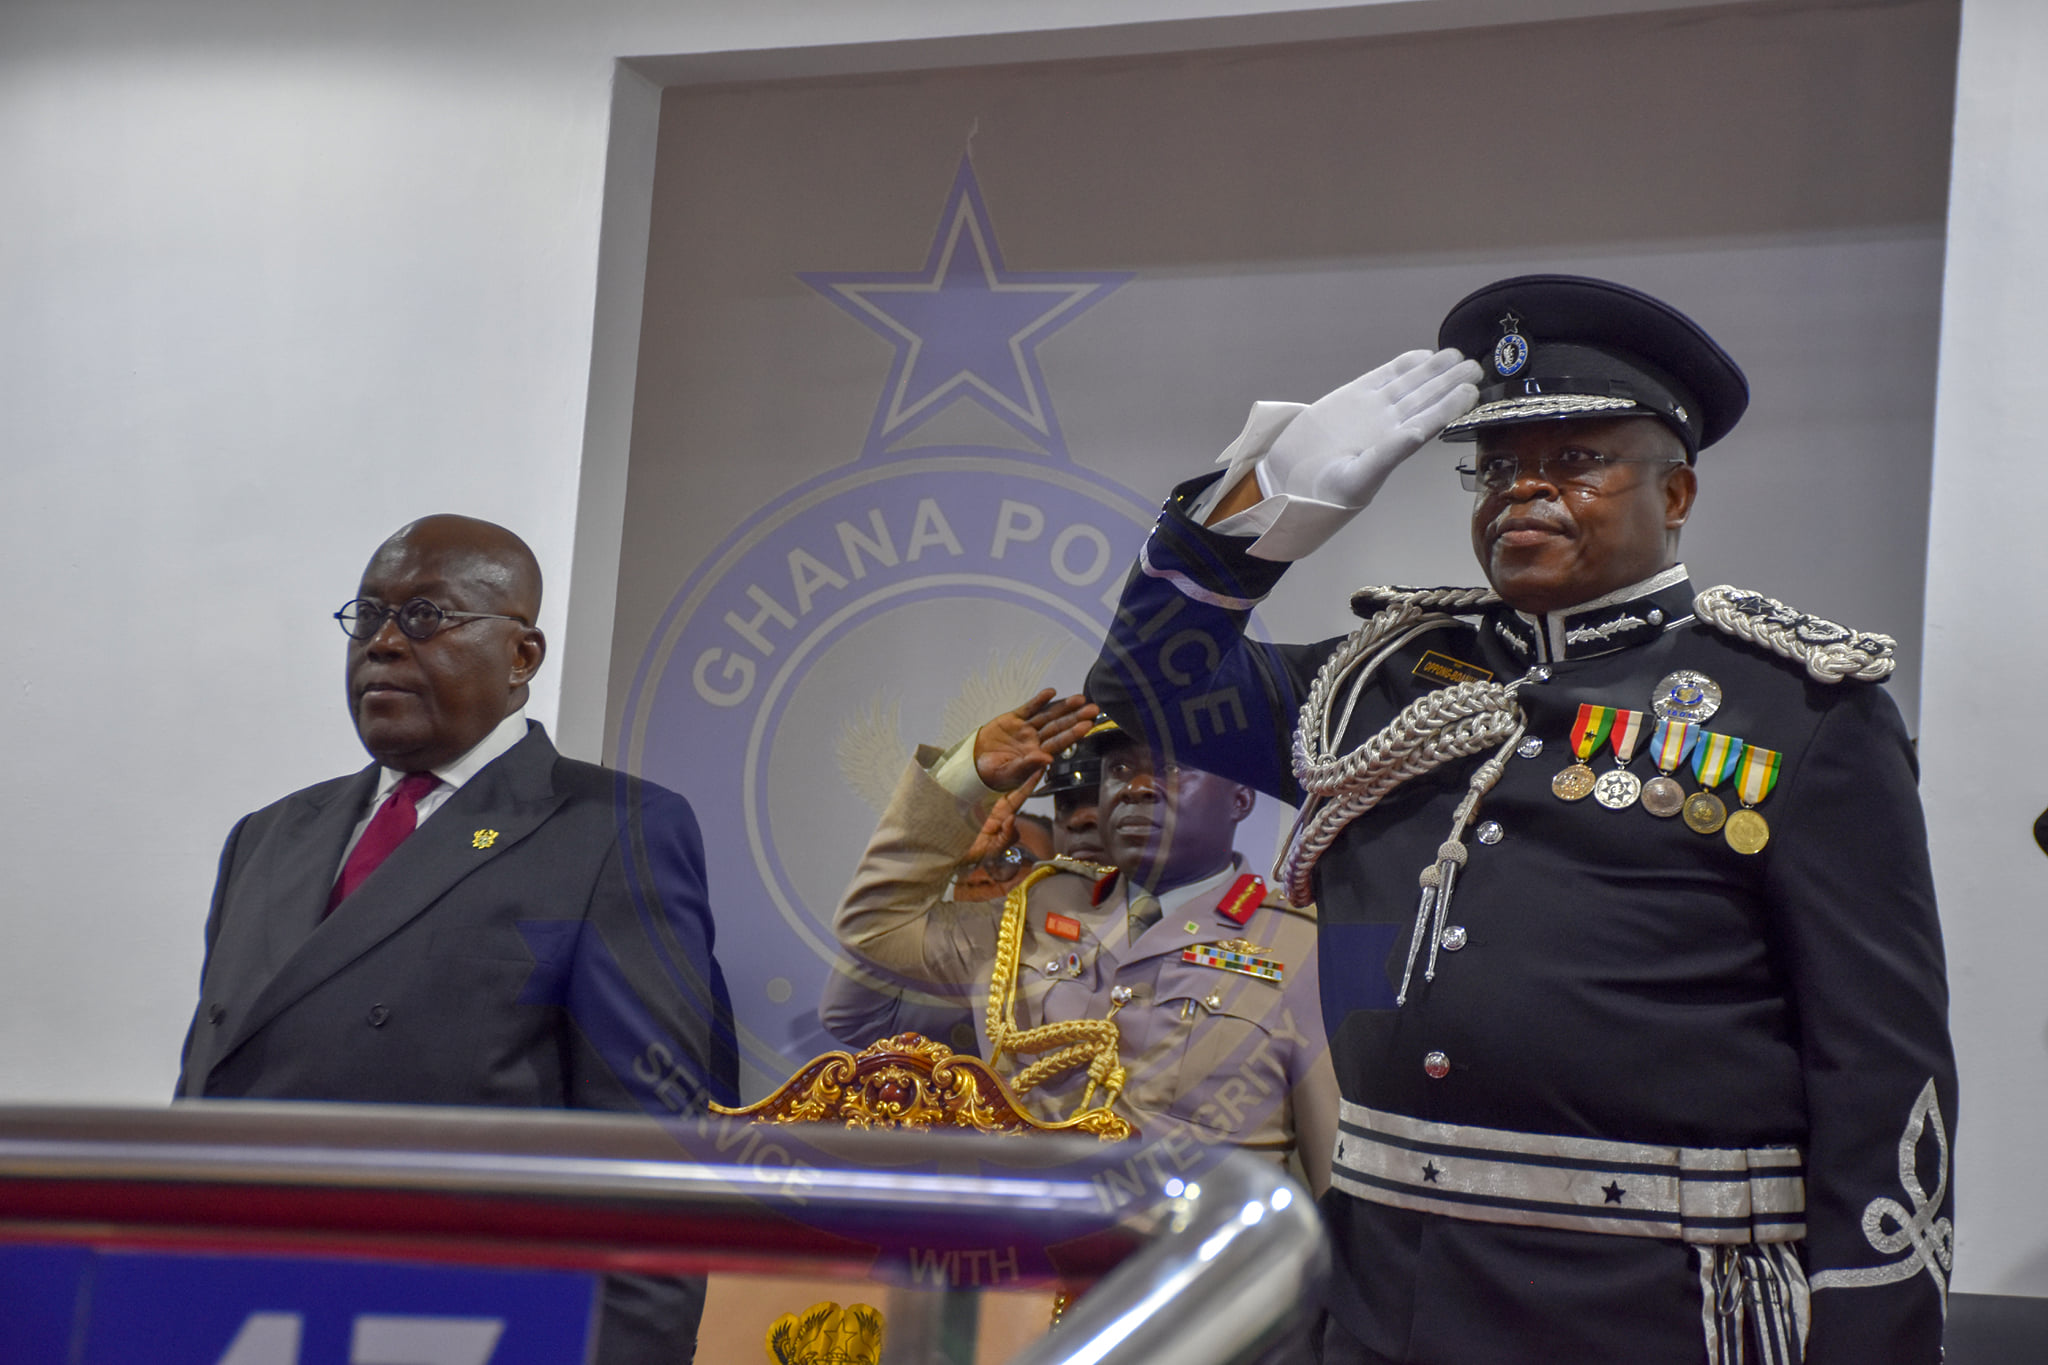 Inspector-General of Police (IGP) James Oppong-Boanuh